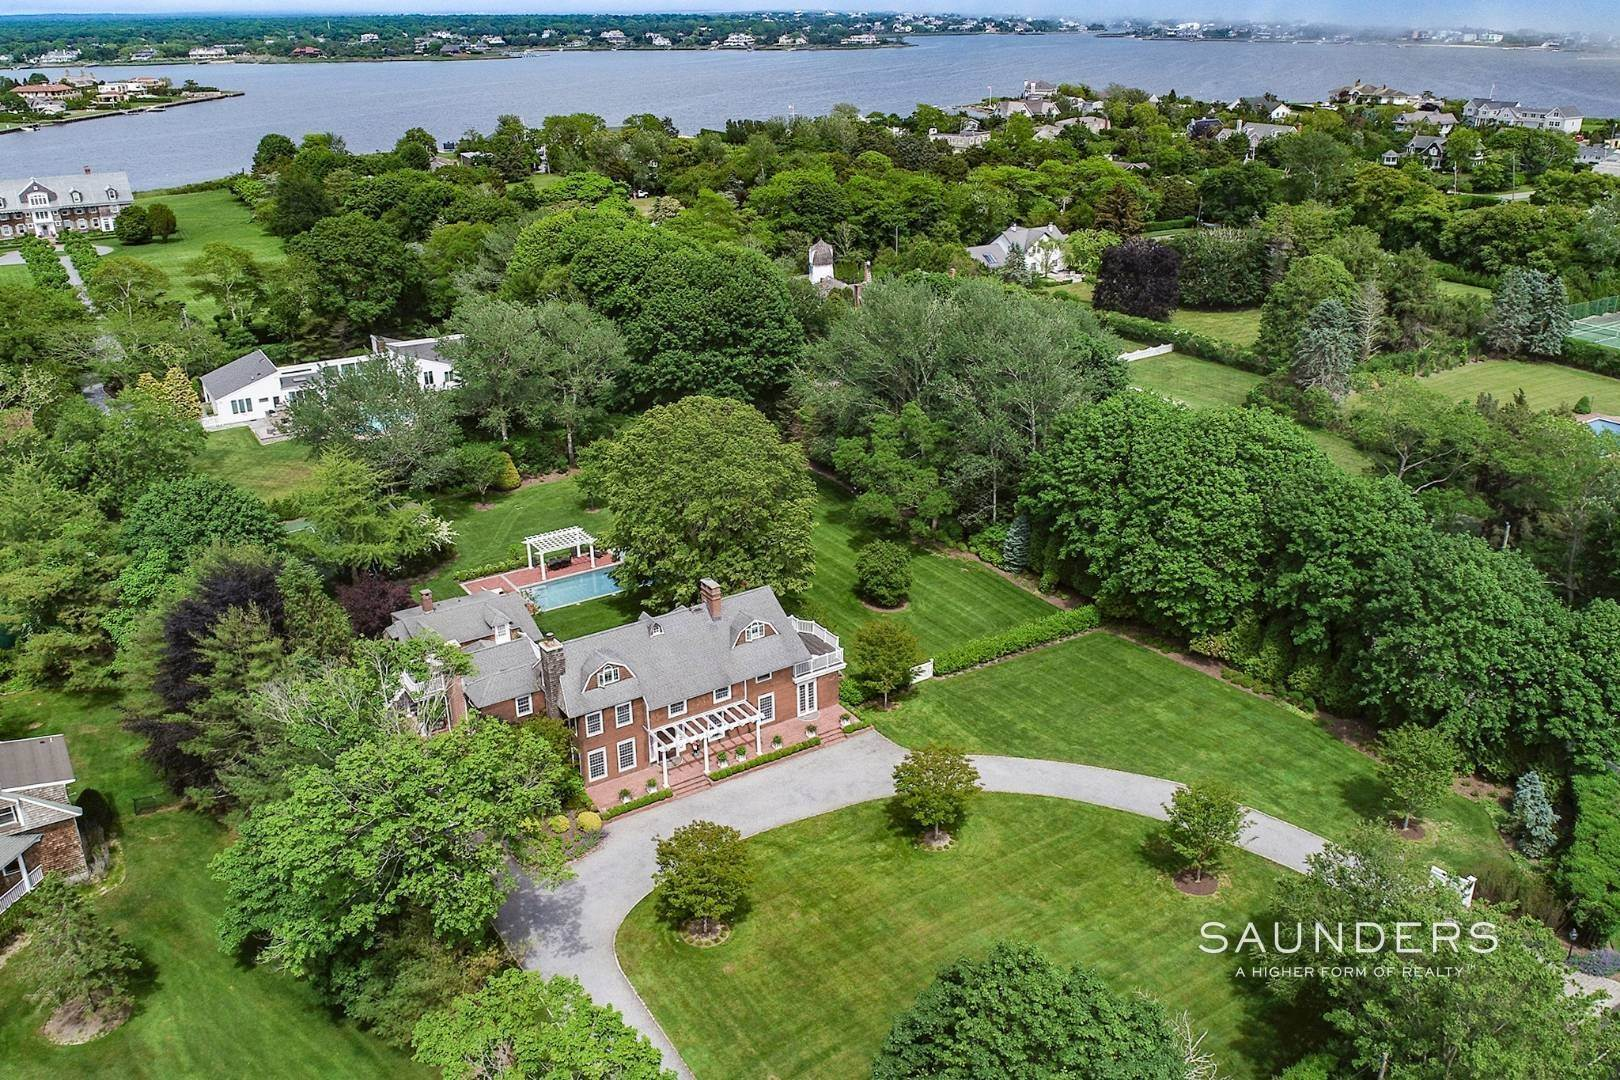 Single Family Homes for Sale at Westhampton Beach Estate With Pool, Putting Green And Tennis 92 Beach Lane, Westhampton Beach Village, Southampton Town, NY 11978